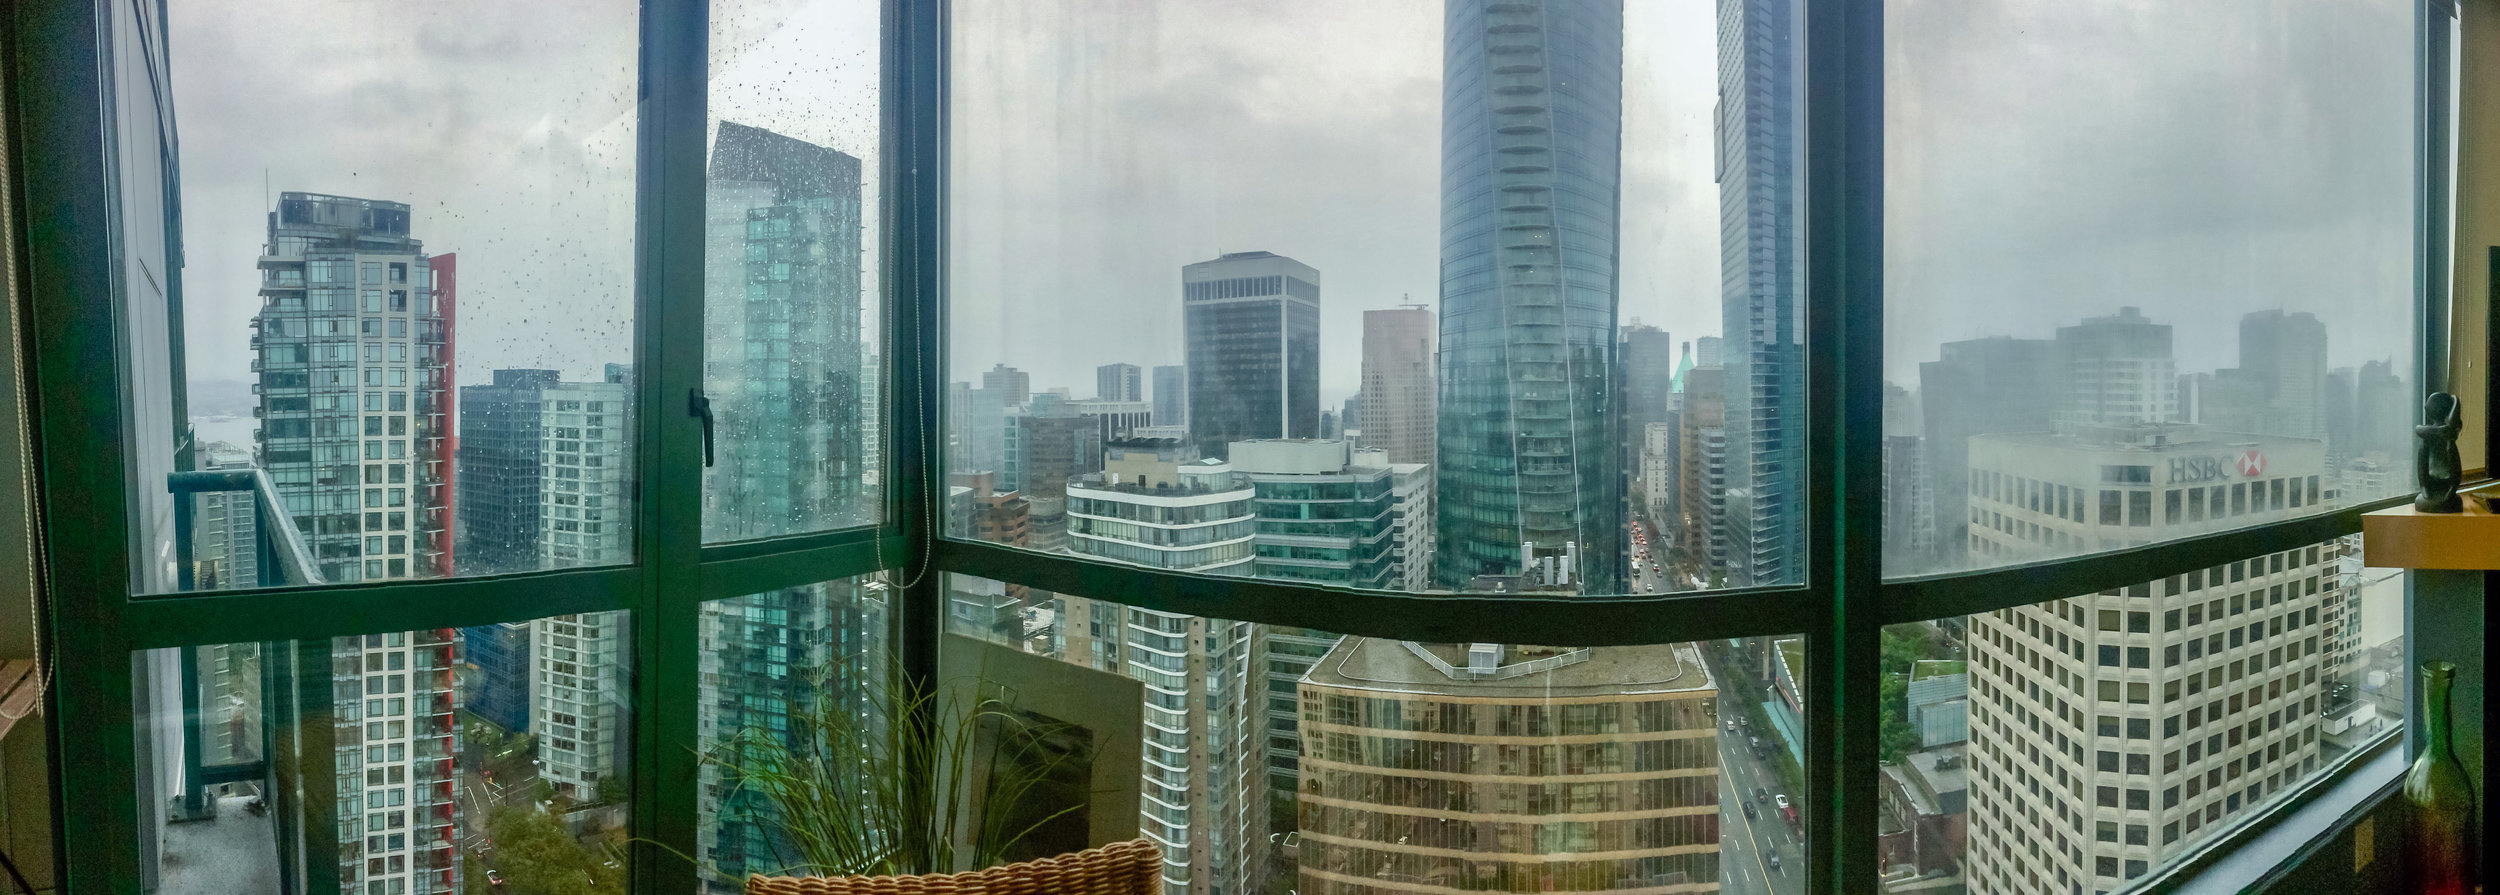 A room with a high rise urban view. Vancouver, B.C.